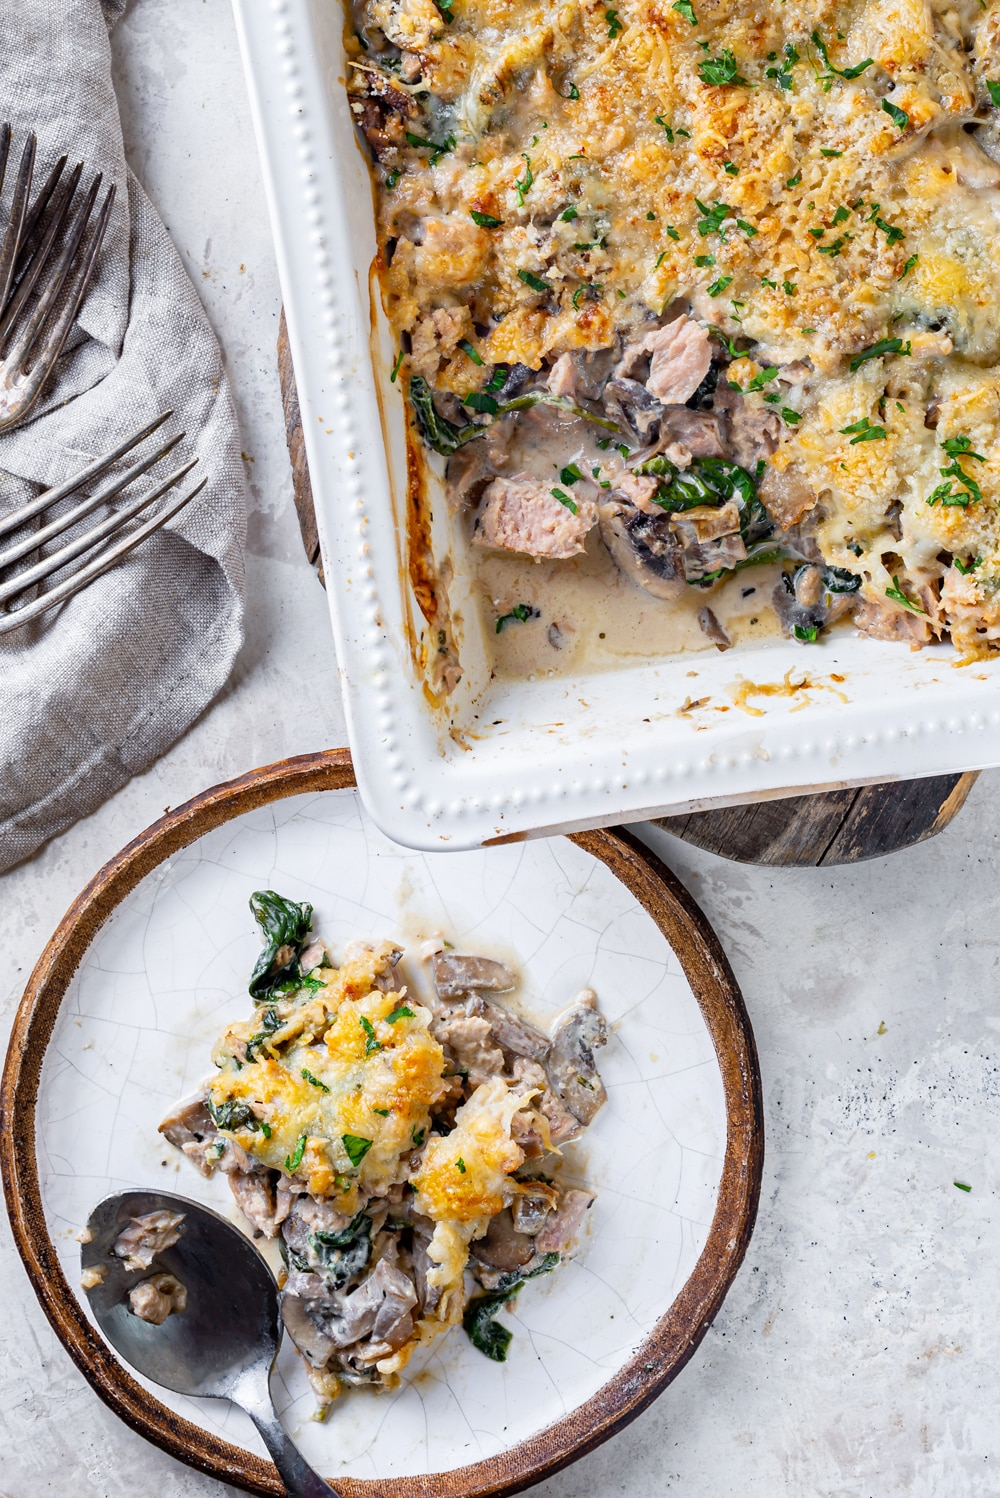 An overhead view of a white plate with keto tuna casserole on it with a metal spoon on the front edge of the plate. A casserole dish filled with the keto tuna casserole is directly behind the plate slightly off to the right. The plate is on a white counter and the casserole dish is on a wooden board on the counter